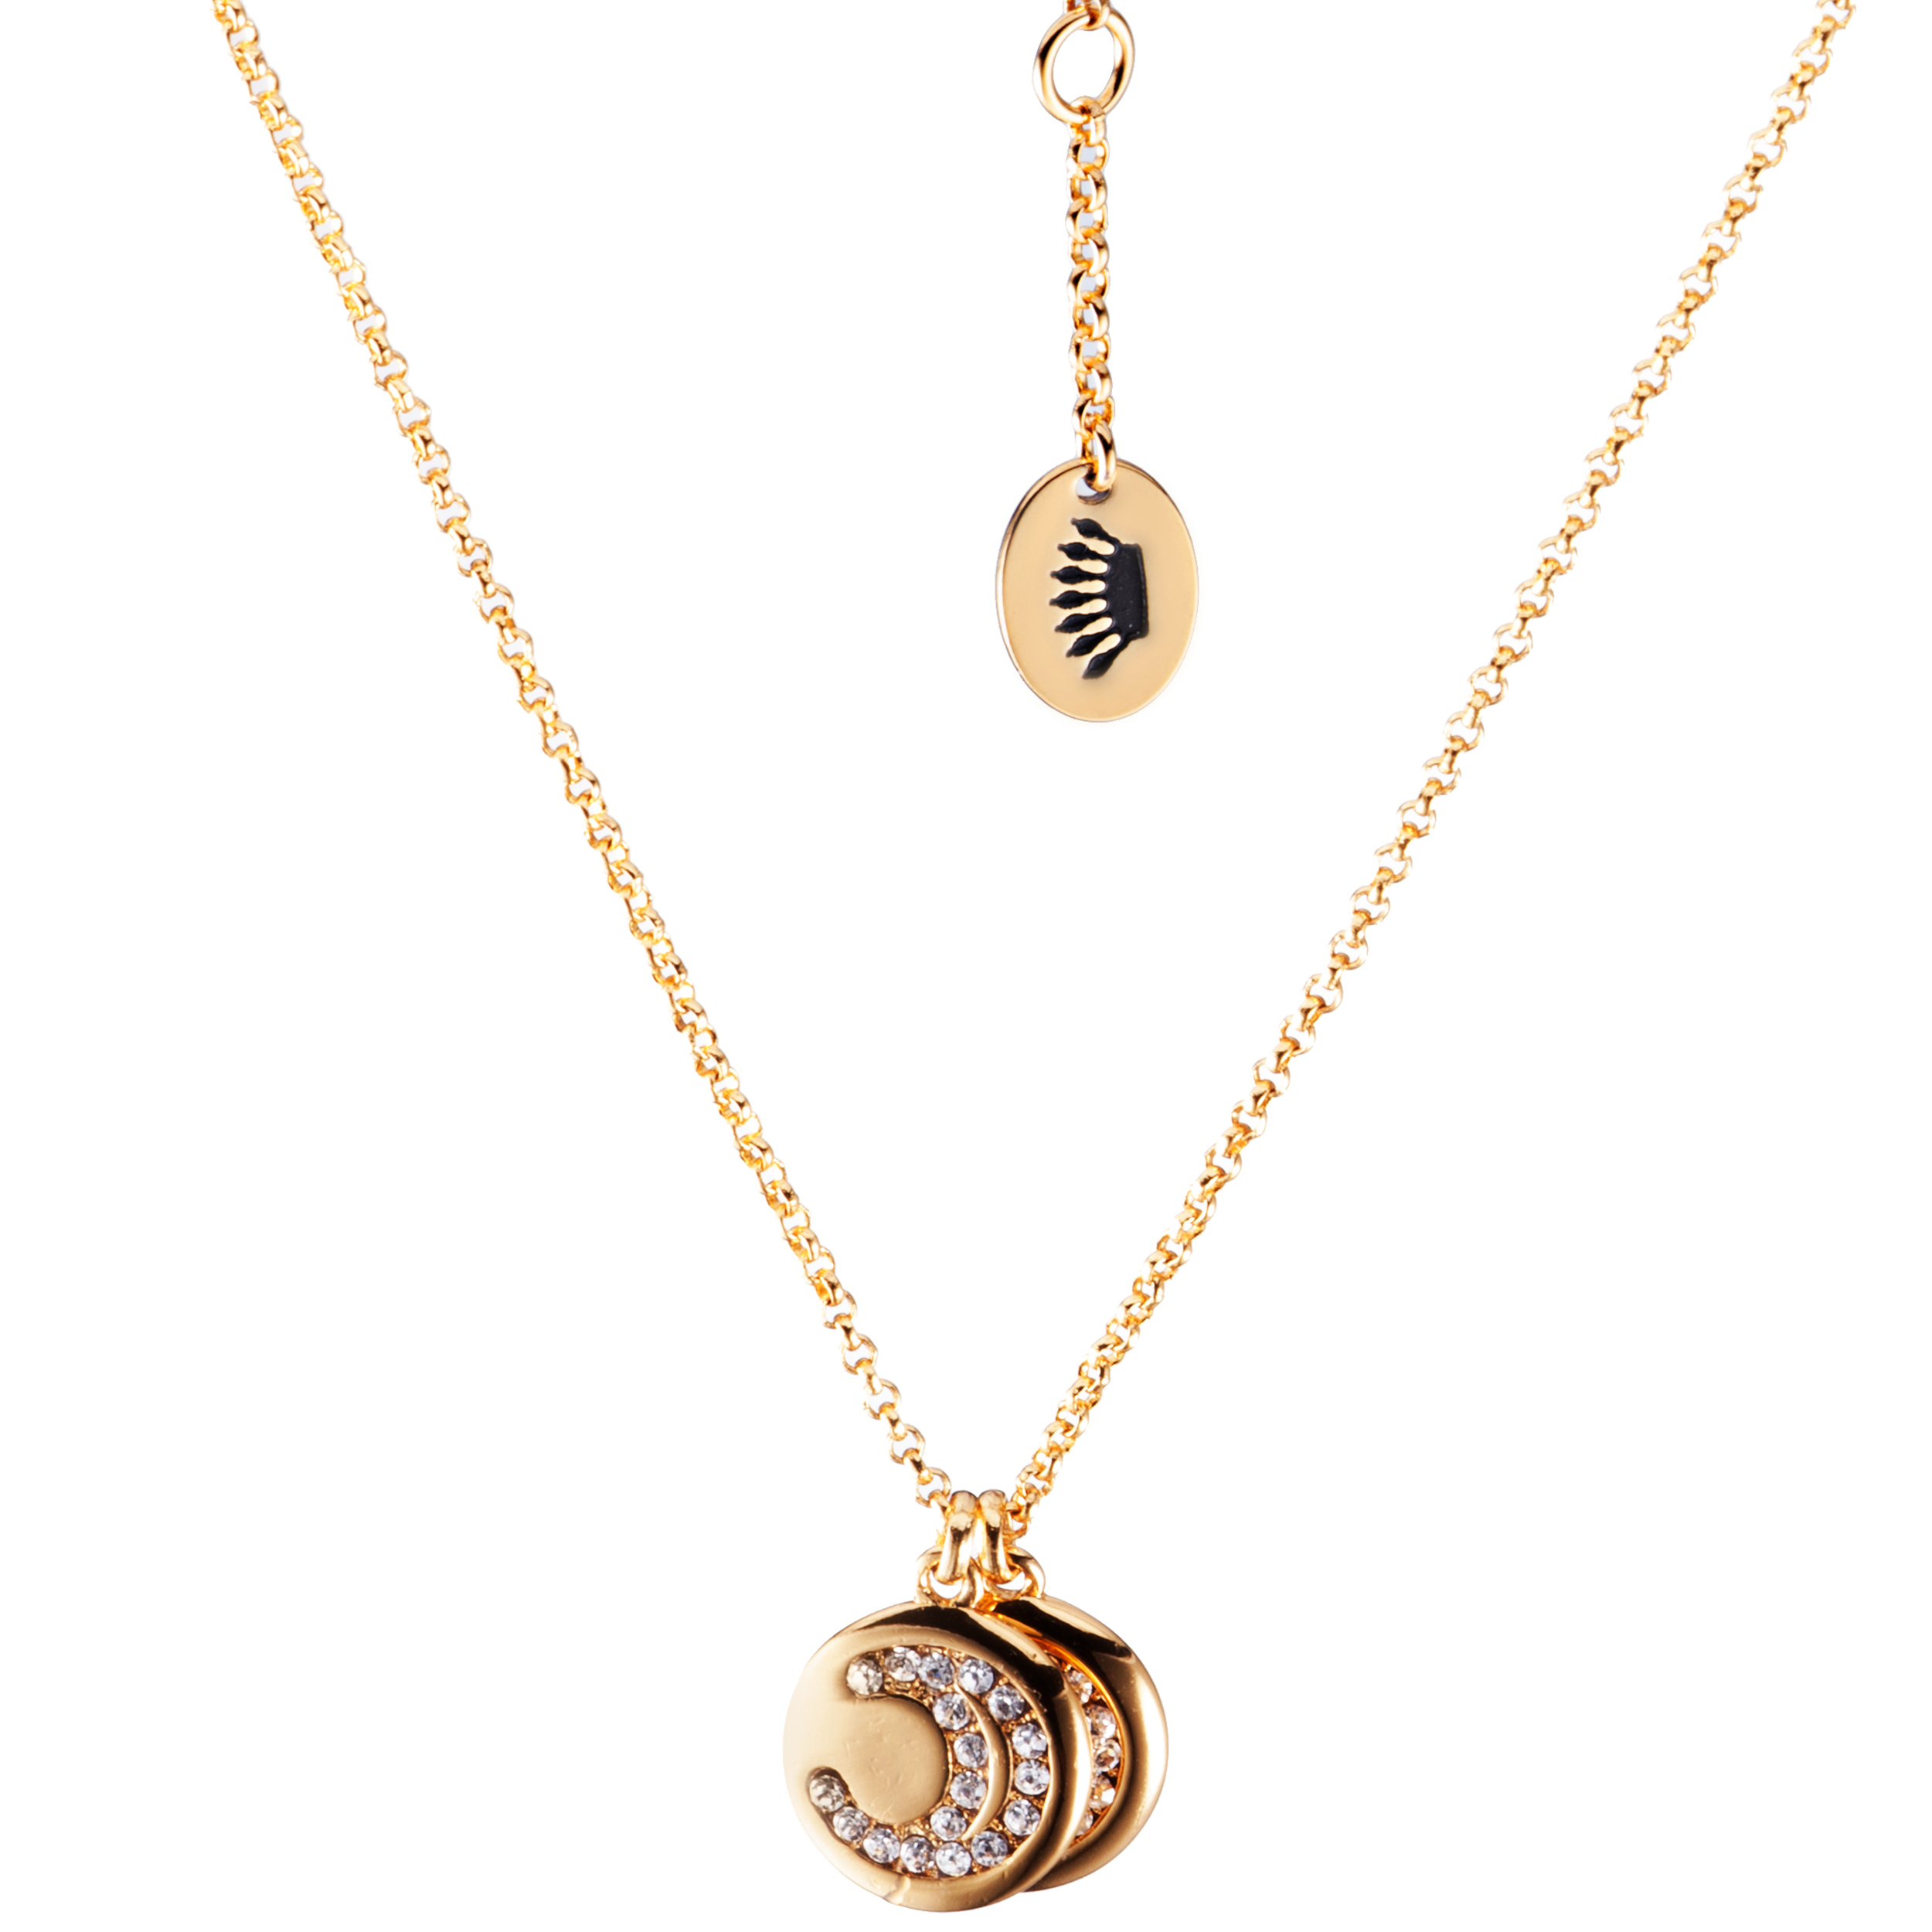 Juicy Couture Peace Moon Double Pendant Necklace-Gold